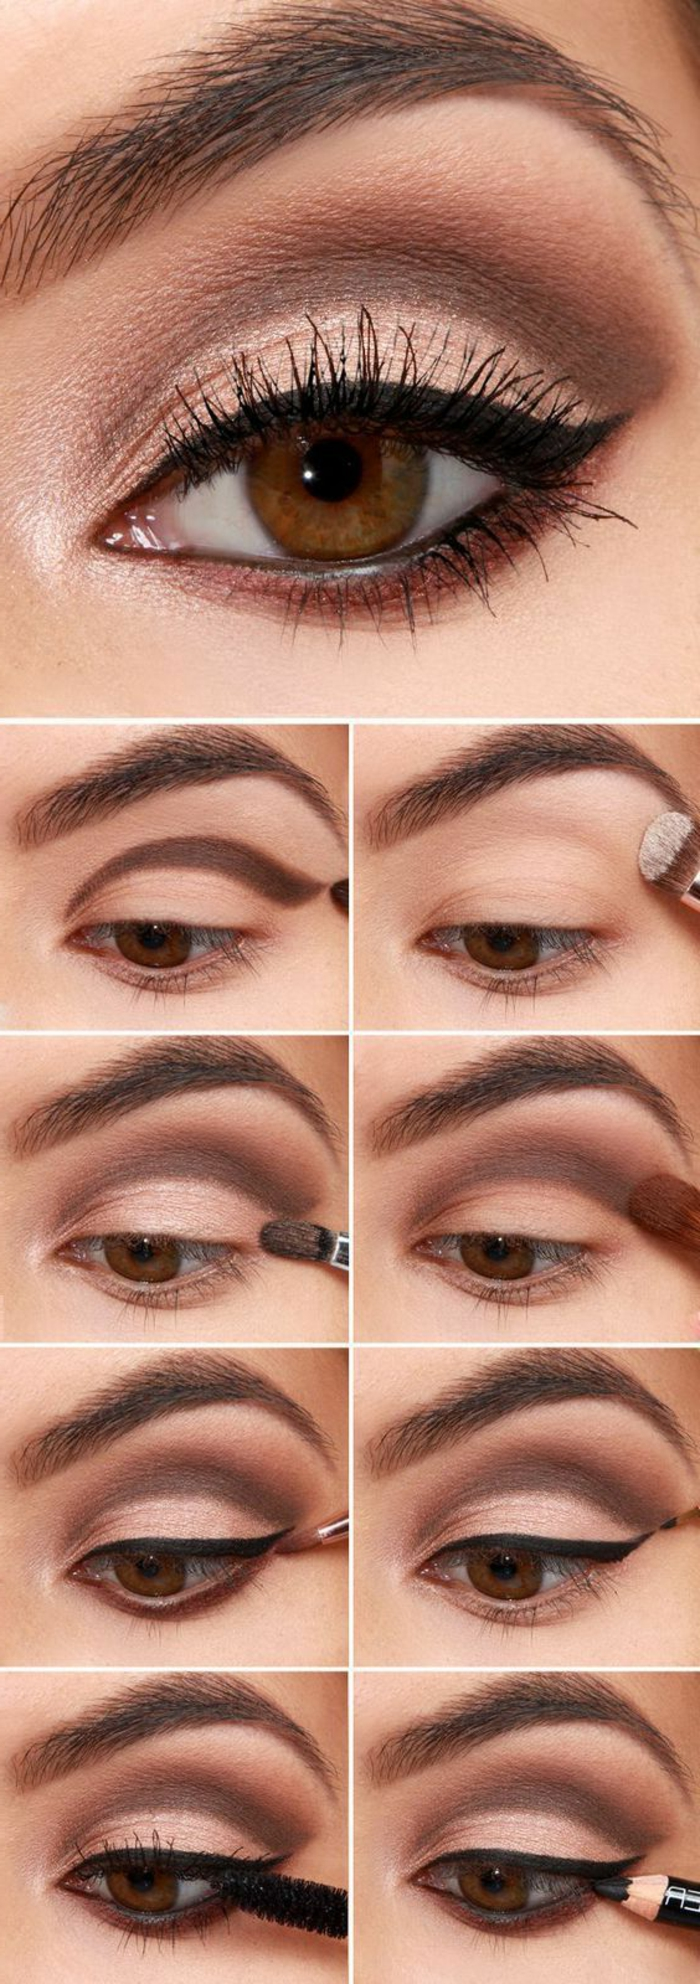 Maquillage nouvel an yeux marron - Tuto maquillage yeux ...